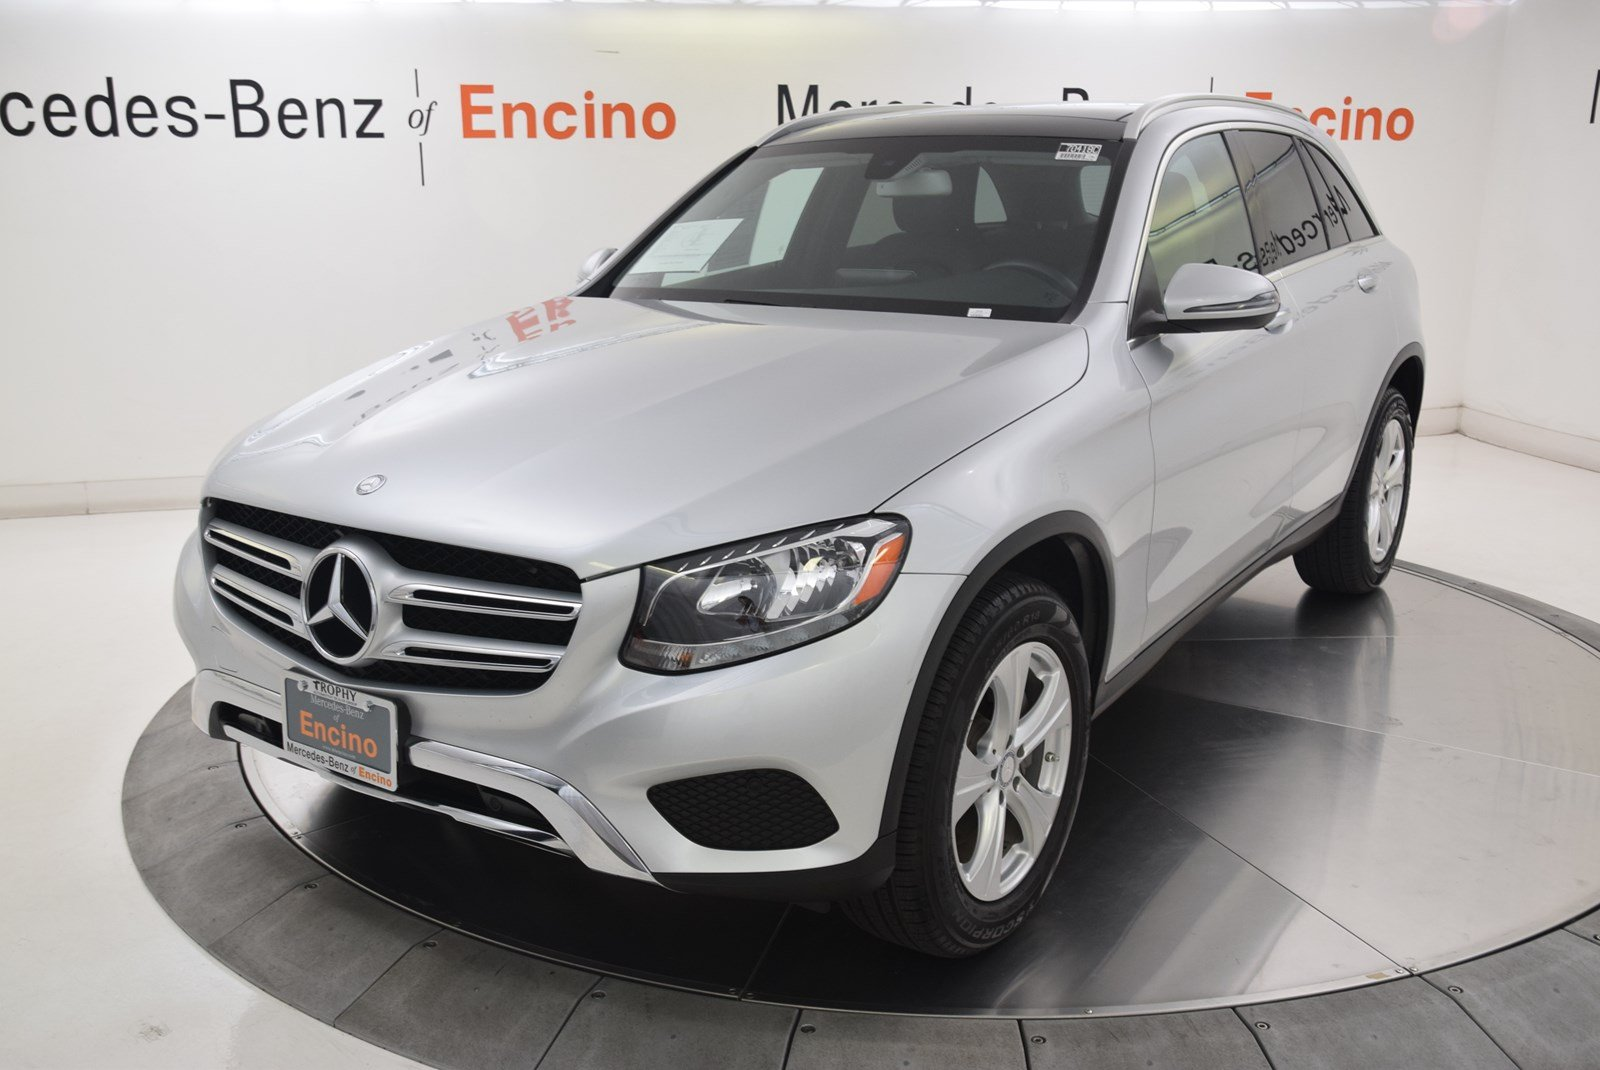 Certified Pre-Owned 2016 Mercedes-Benz GLC GLC 300 SUV in Encino ...